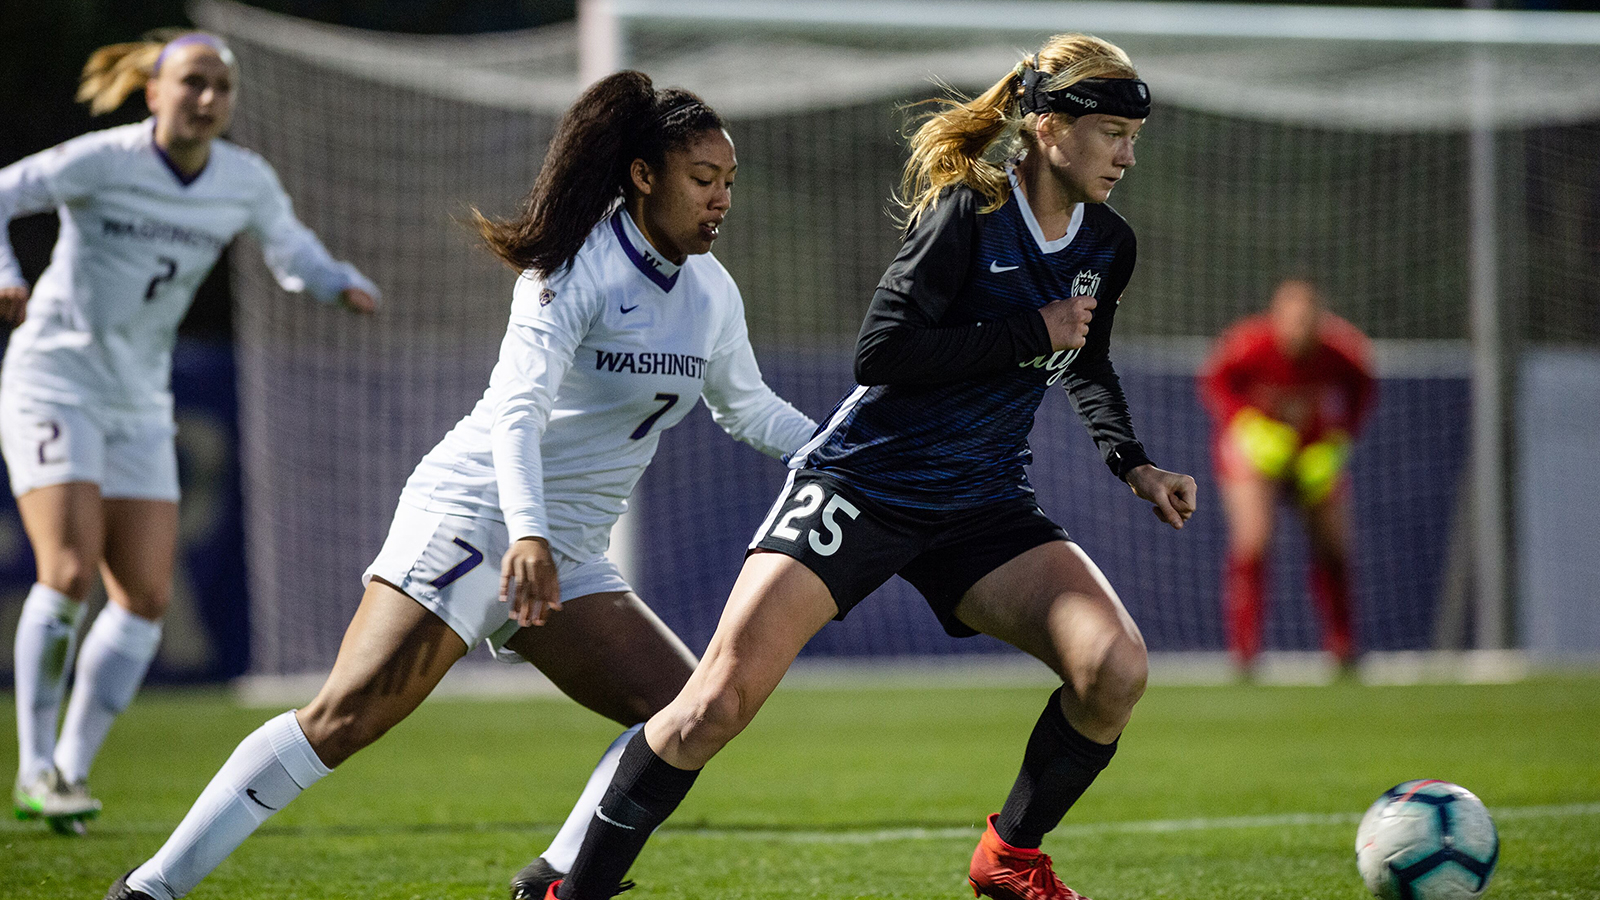 Spring Arbor's Bethany Balcer signs professional contract with NWSL's Reign FC